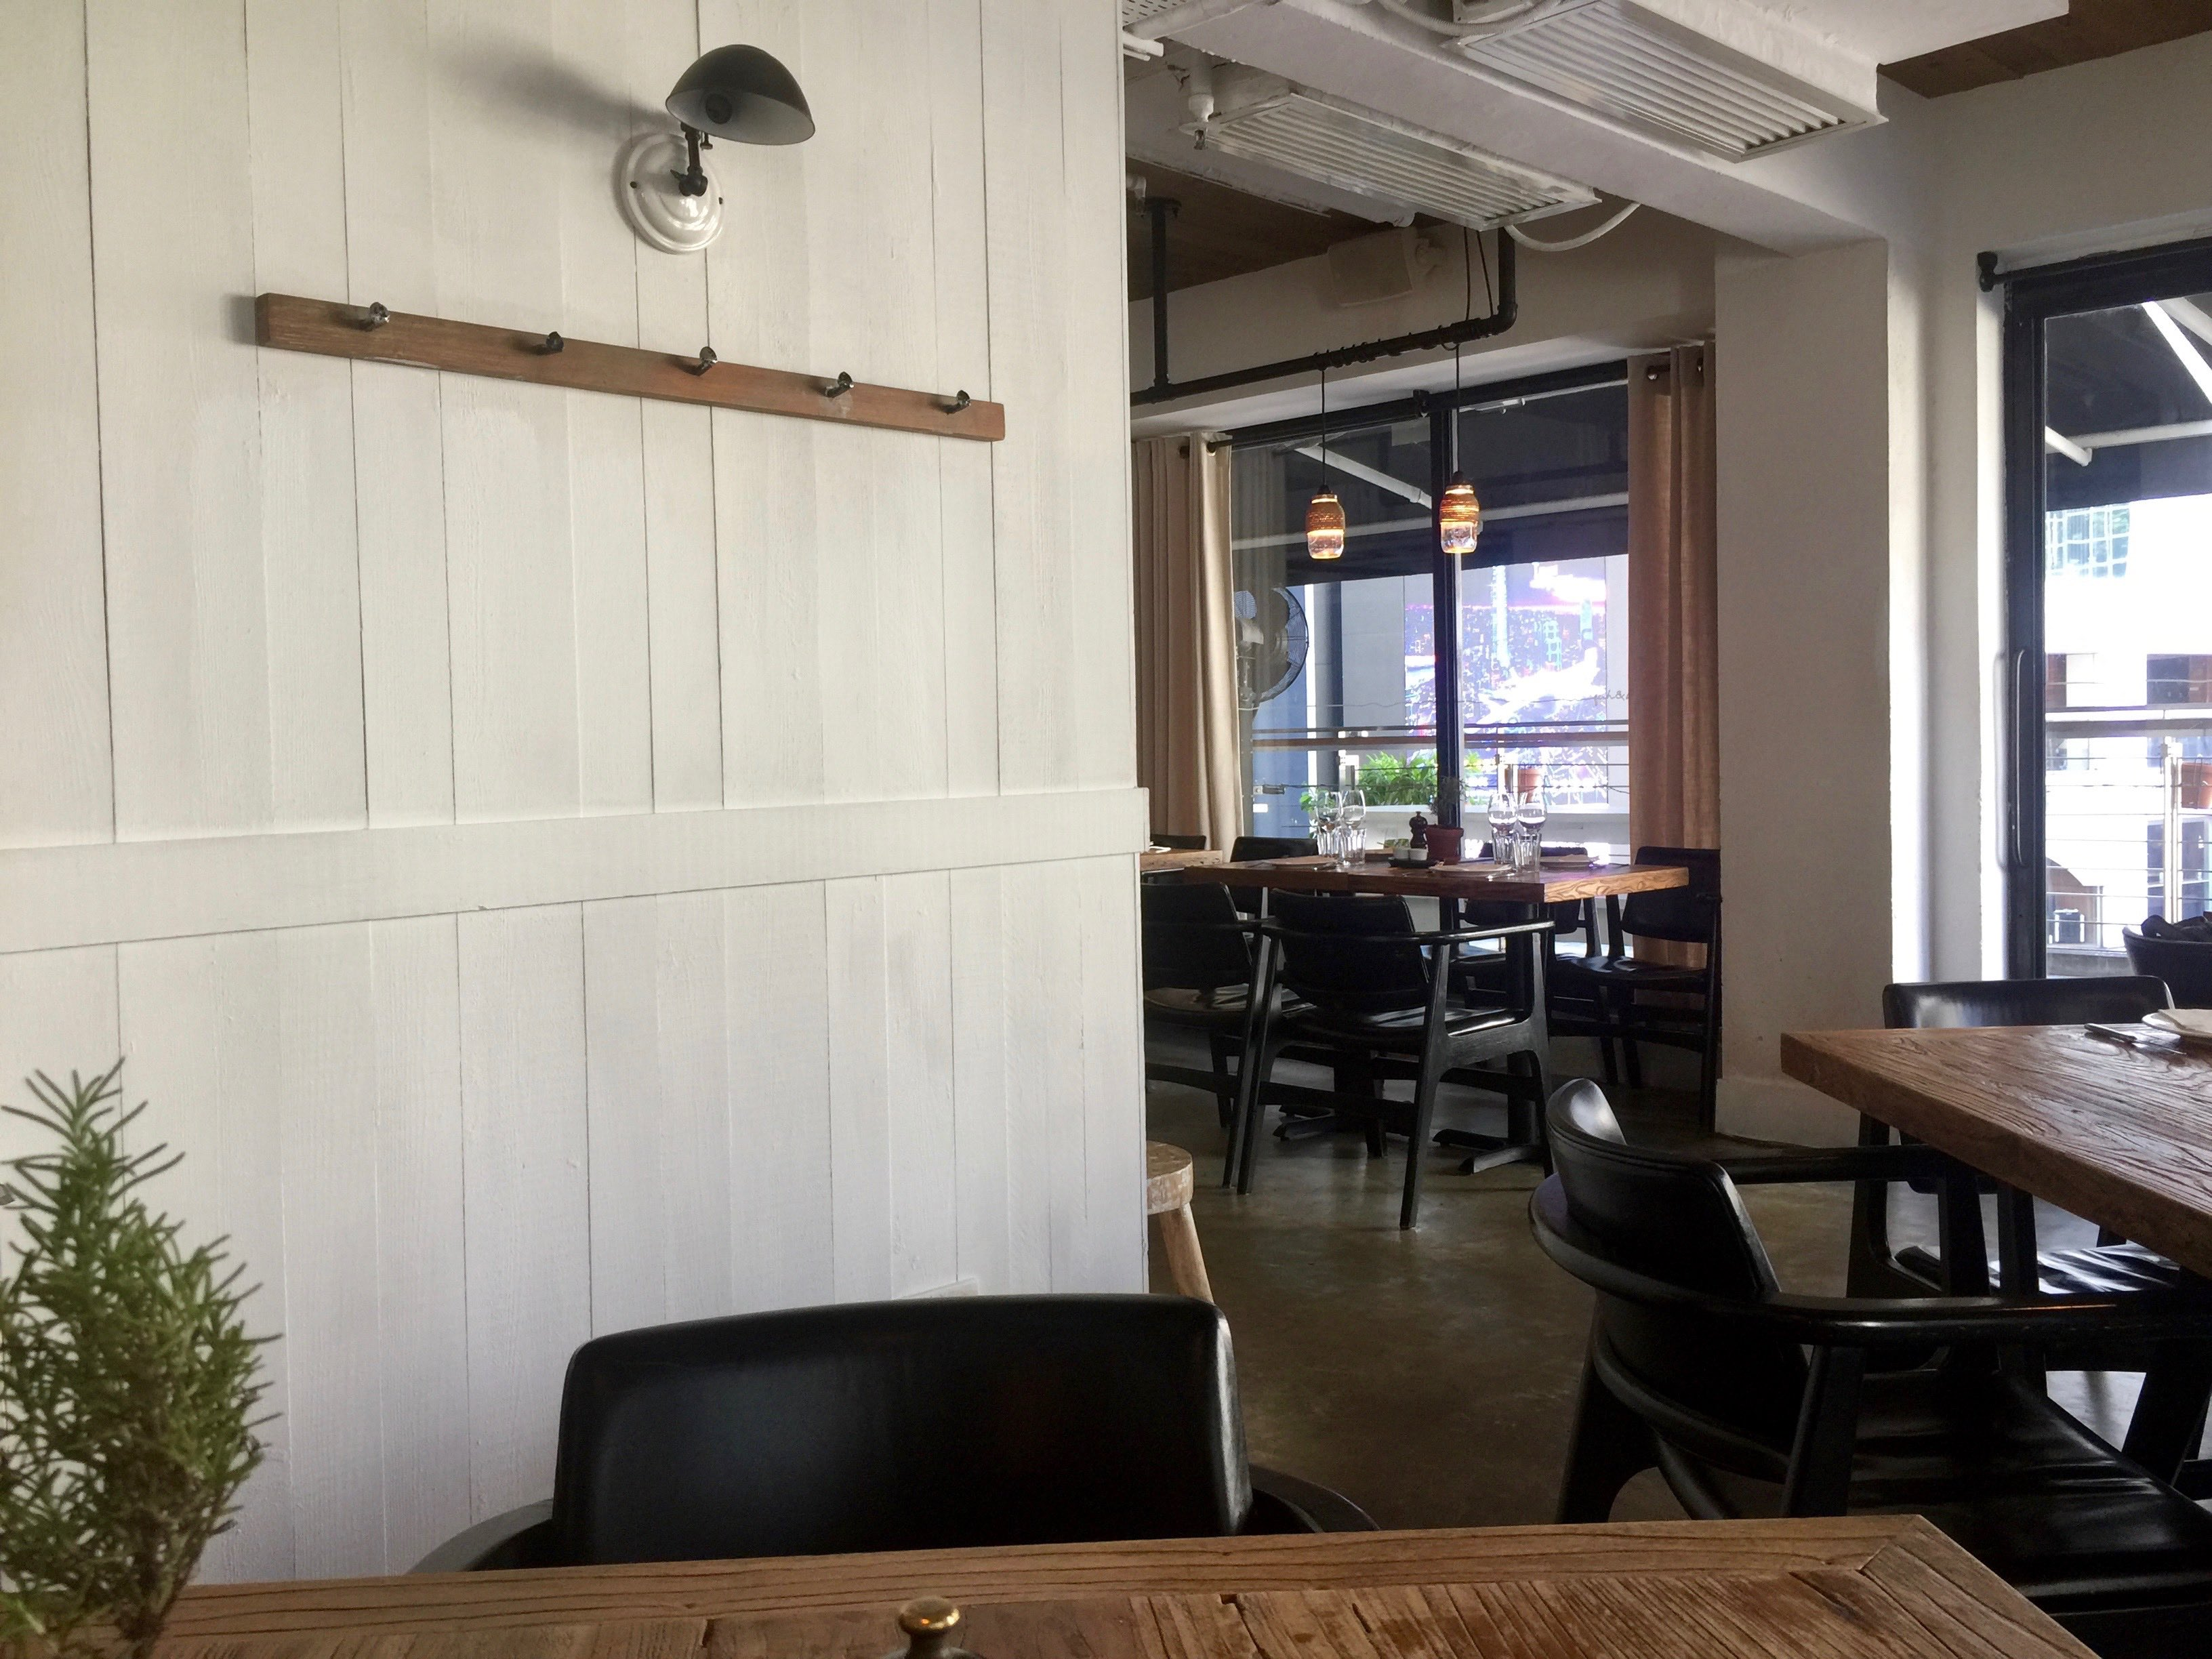 HK Central Wyndham Street turnkey restaurant for Lease with licence